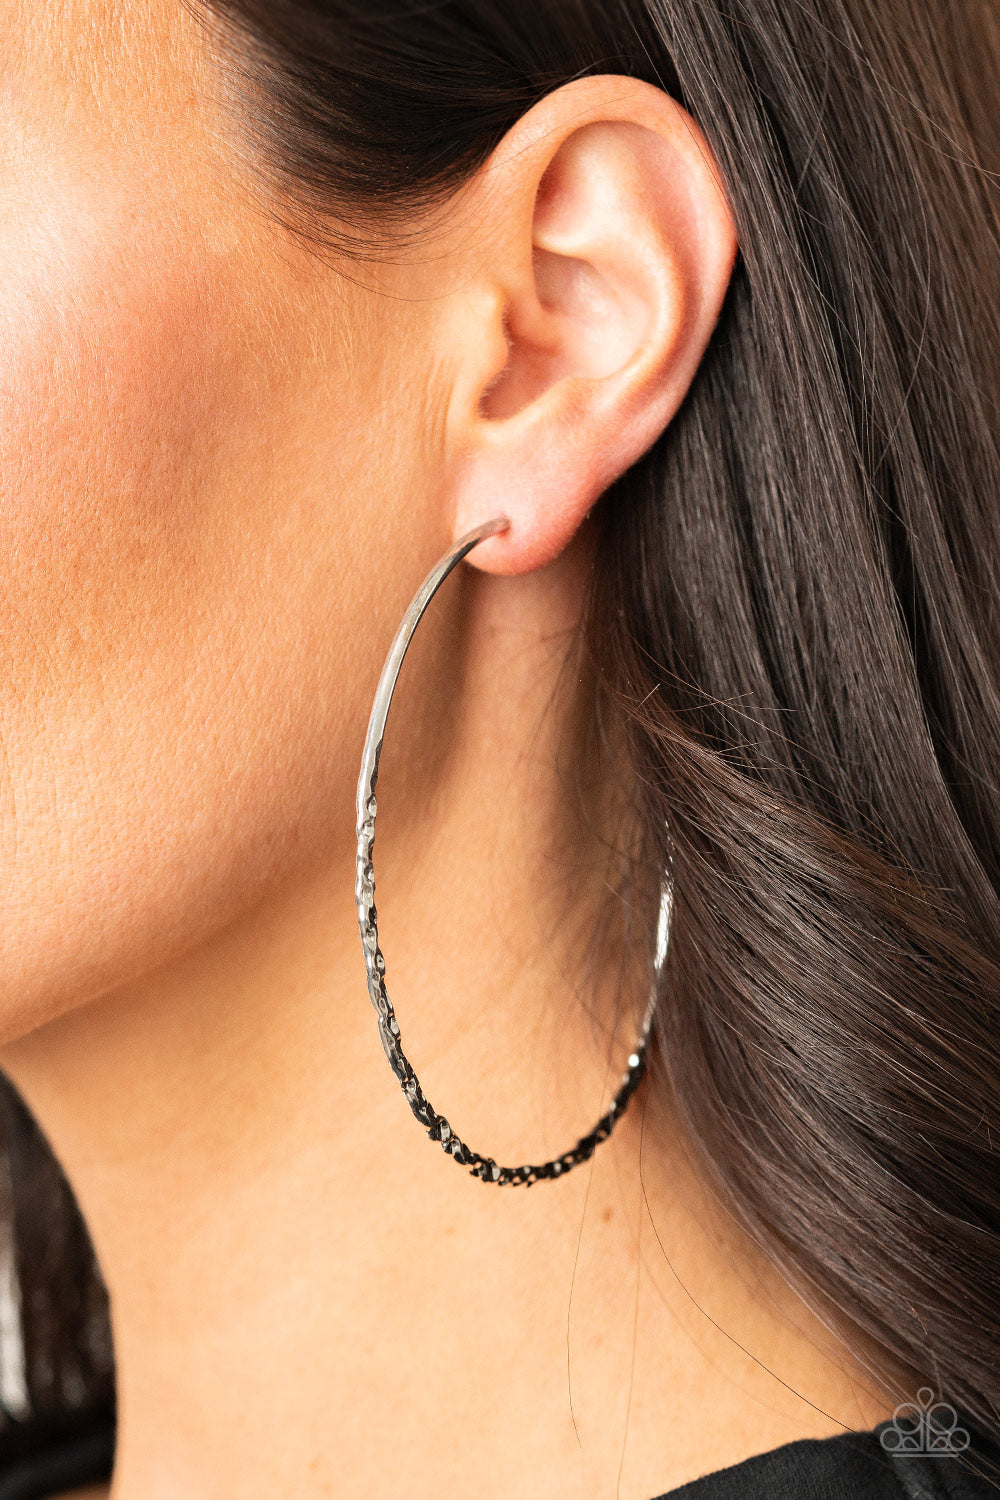 Paparazzi Jewelry & Accessories - Embellished Edge - Silver Earrings. Bling By Titia Boutique